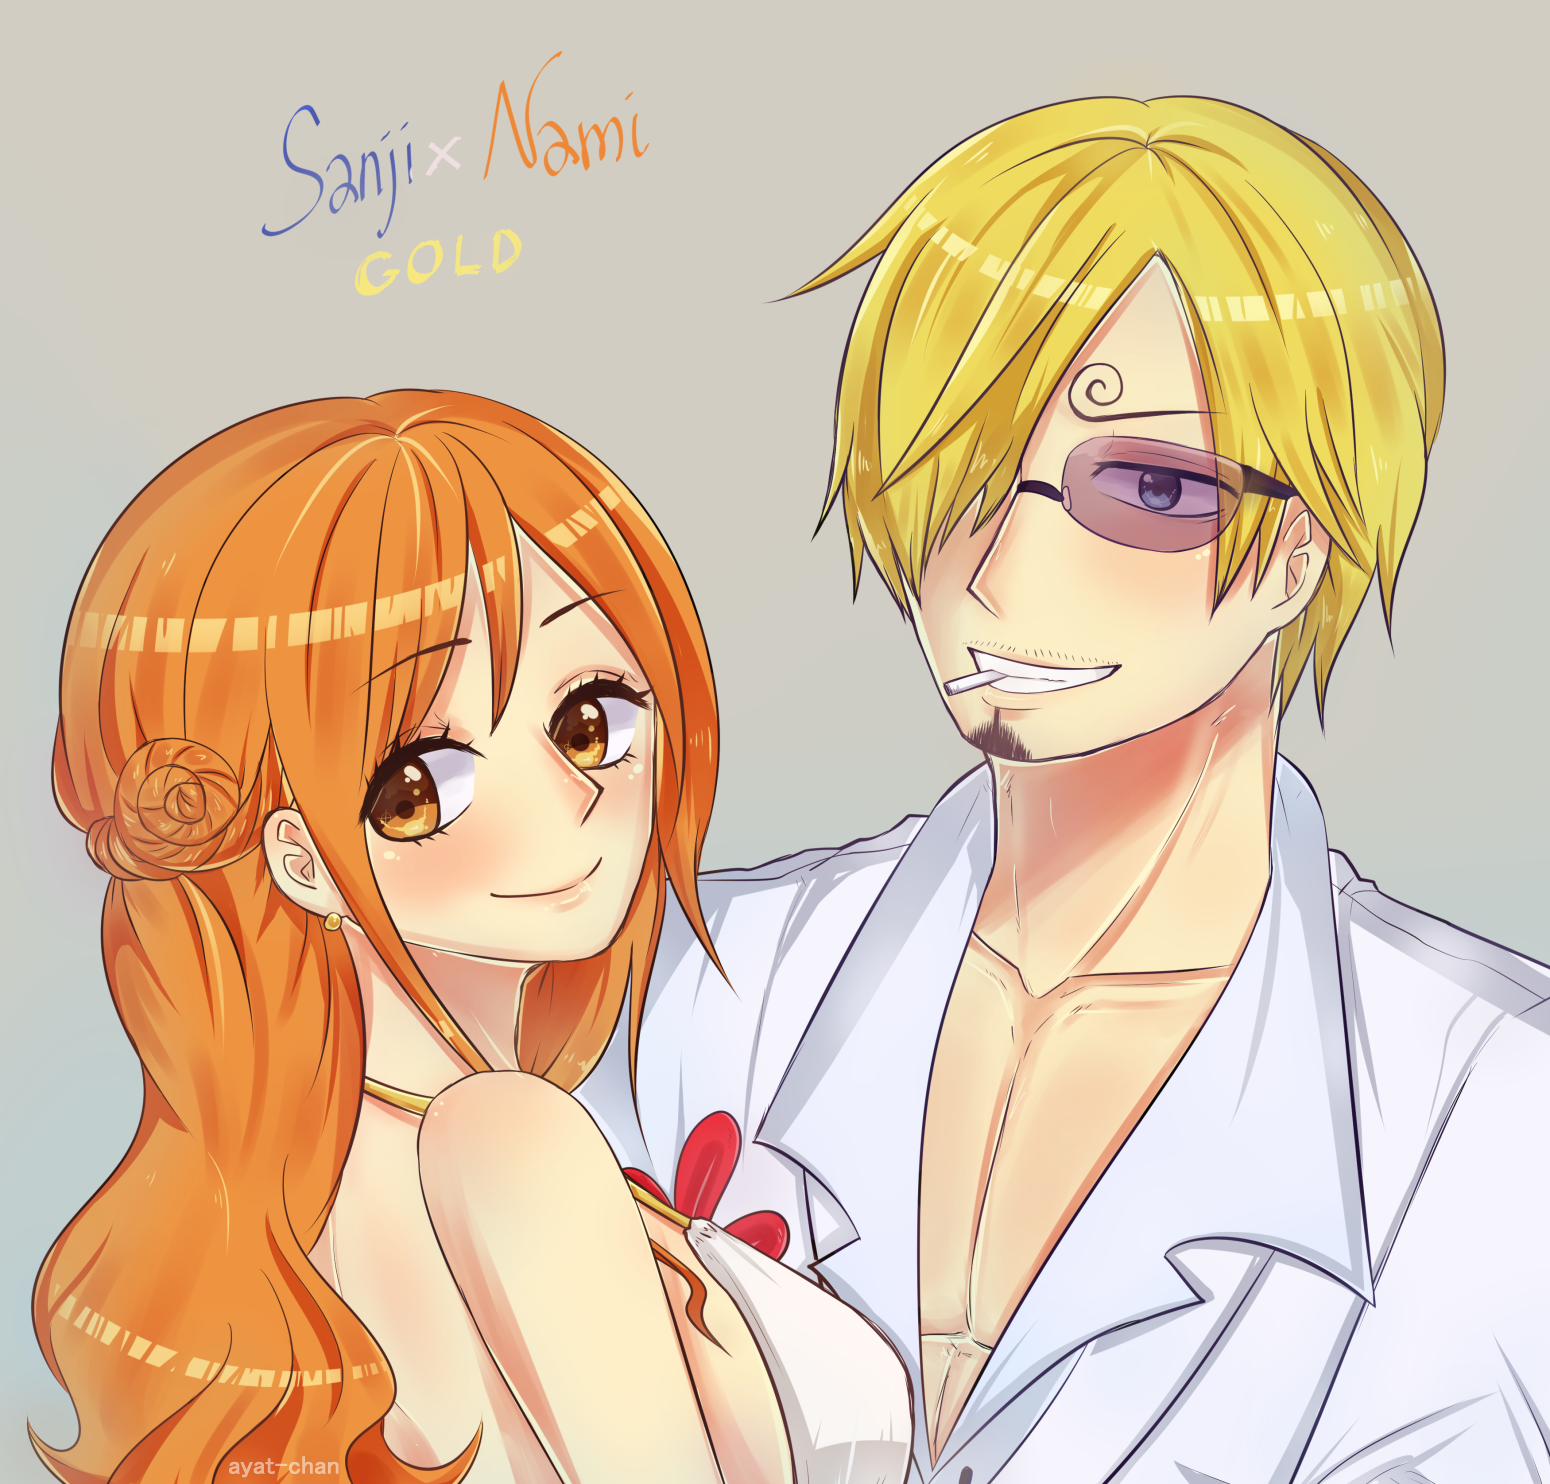 Sanji & Nami from GOLD movie